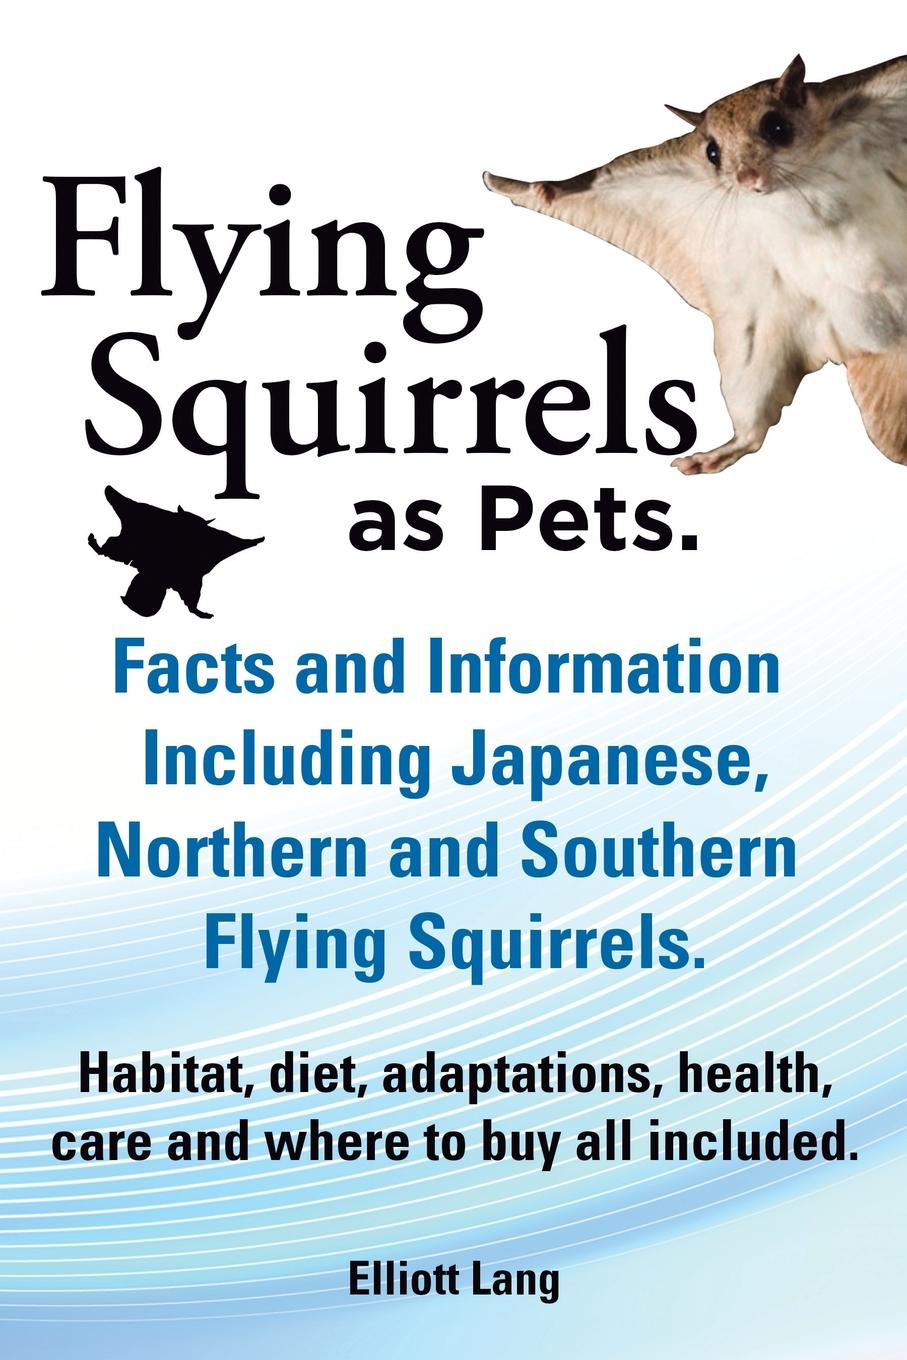 Elliot Lang Flying Squirrels as Pets. Facts and Information. Including Japanese, Northern and Southern Flying Squirrels. Habitat, Diet, Adaptations, Health, Care mhu 4 flying fiends and grues